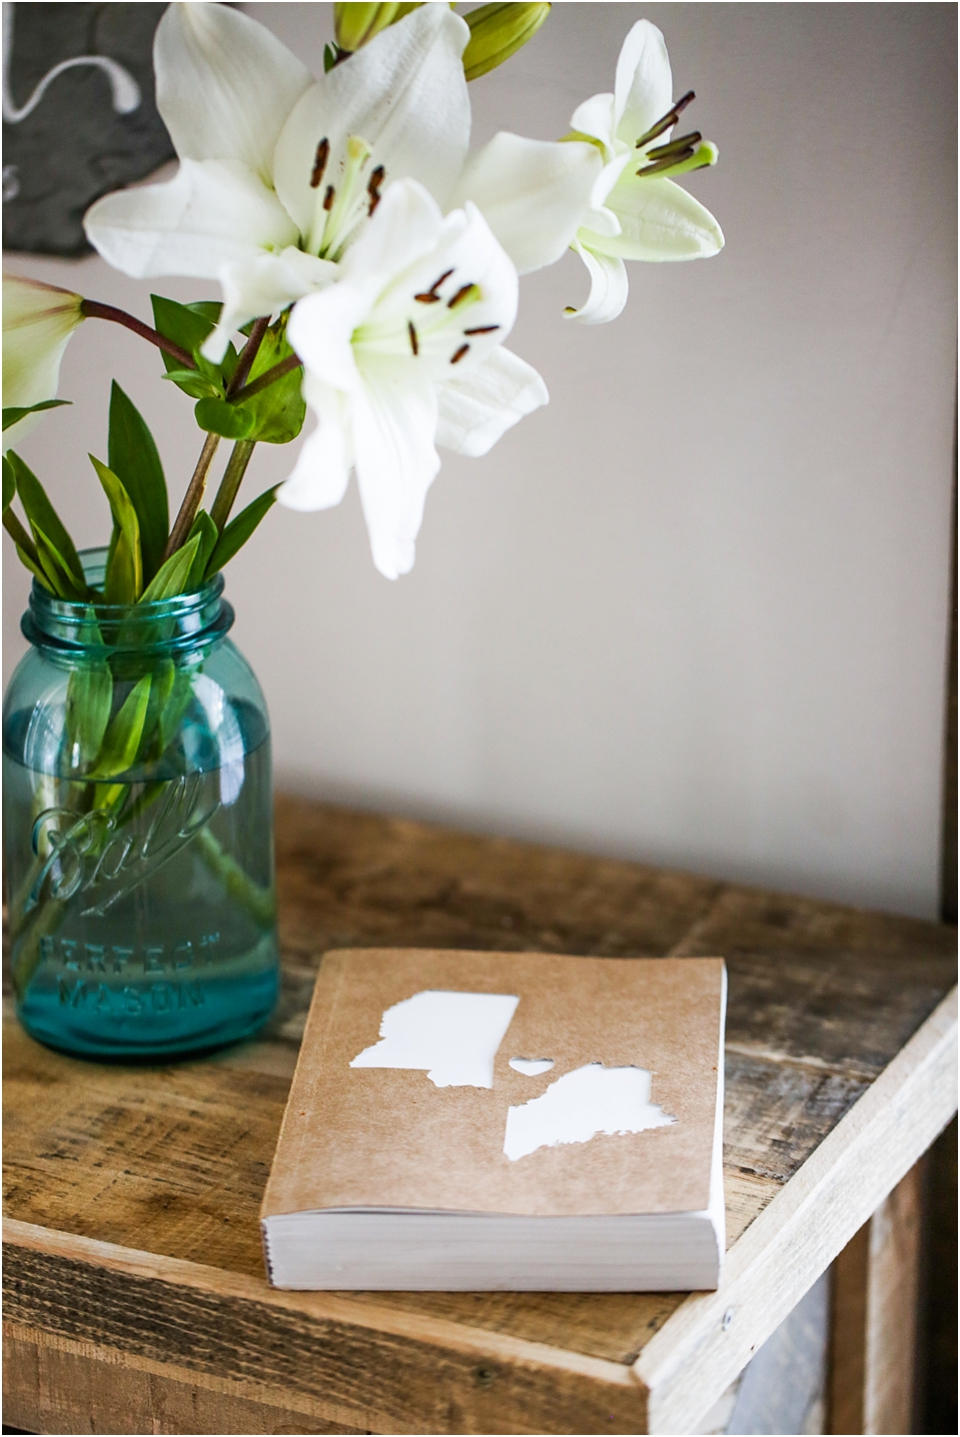 Best Wedding Gift Ever For Bride : Best Wedding Anniversary Gift EverSixth Bloom- Lifestyle ...